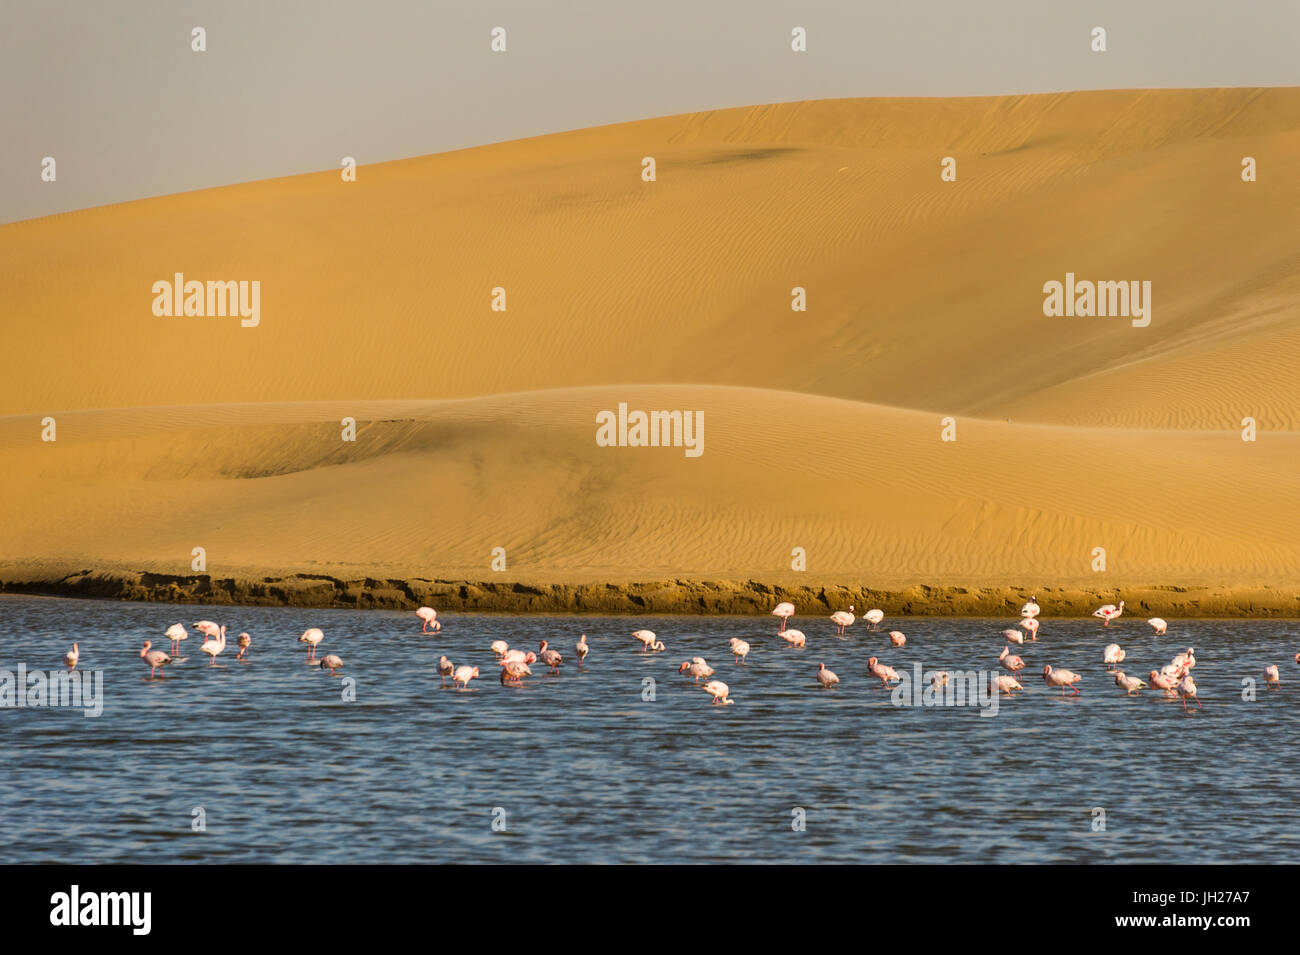 Saltwater pool with flamingos near Walvis Bay, Namibia, Africa - Stock Image